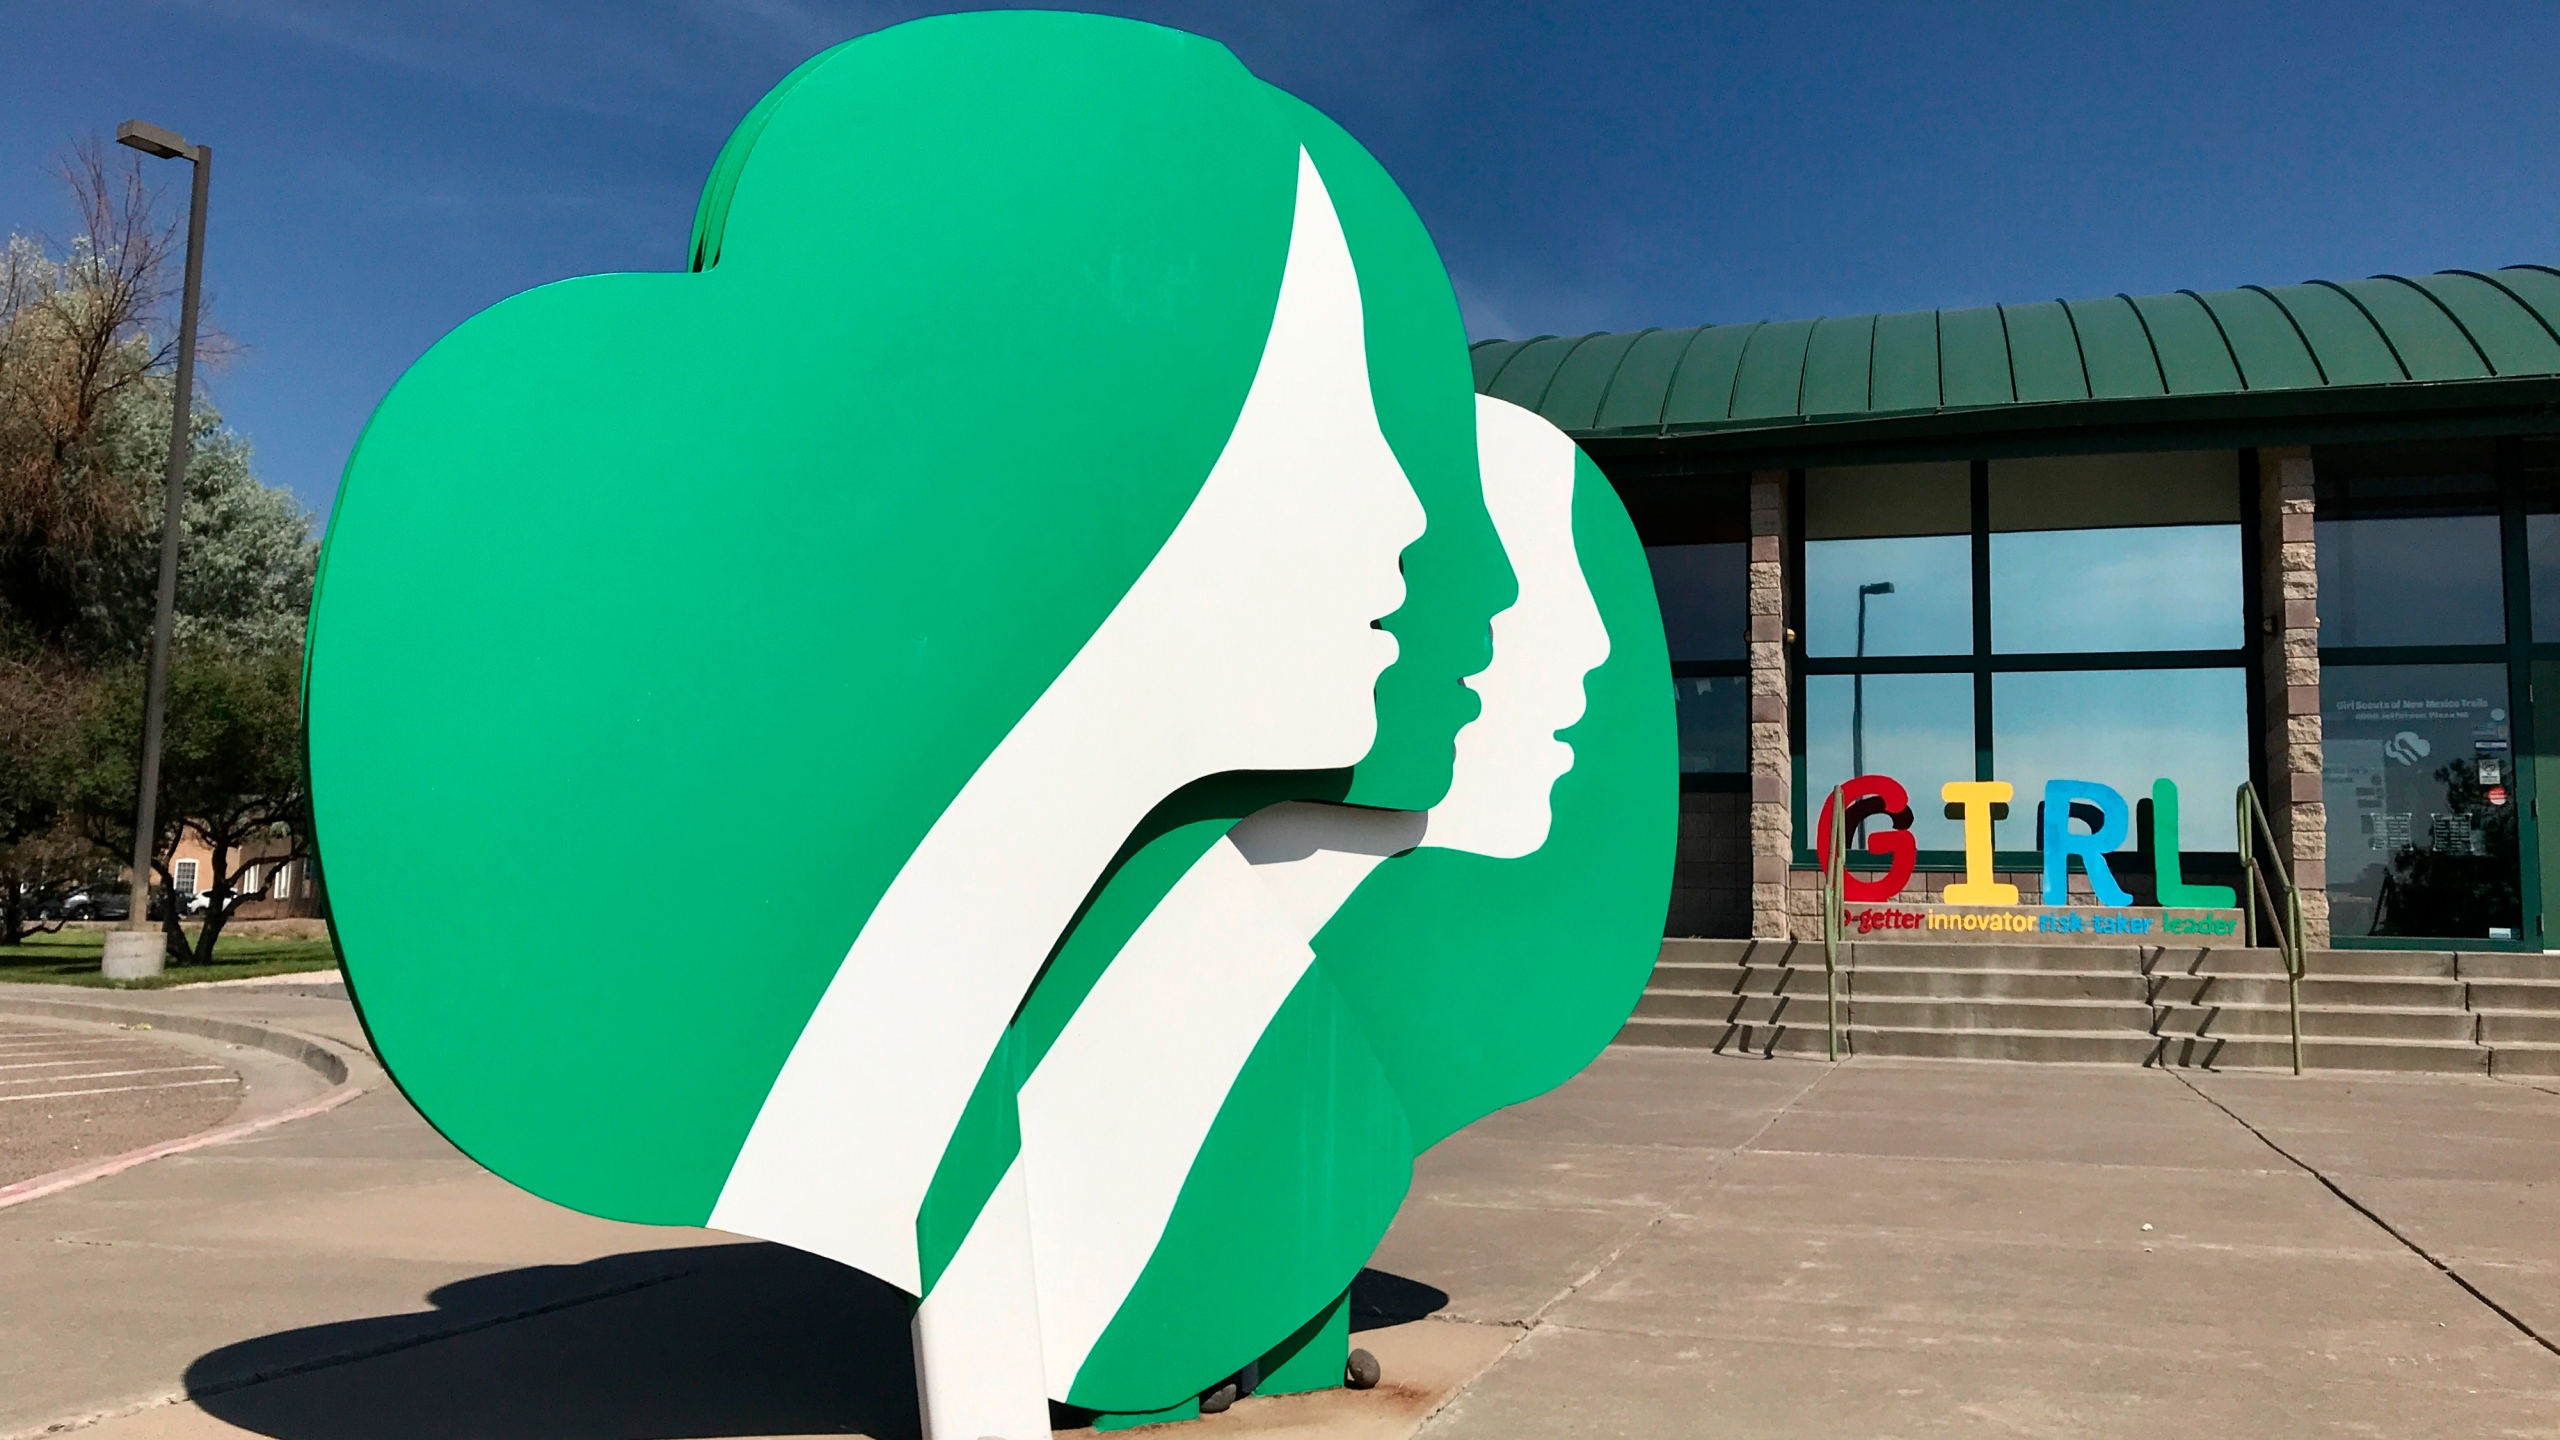 This June 7, 2021, image shows the headquarters of Girl Scouts of New Mexico Trails in Albuquerque, New Mexico. Rebecca Latham, CEO of Girl Scouts of New Mexico Trails, said her council had thousands of boxes left over at the end of the selling season in late spring, even though girls tried innovative selling methods like drive-thru booths and contact-free delivery. (AP Photo/Susan Montoya Bryan)